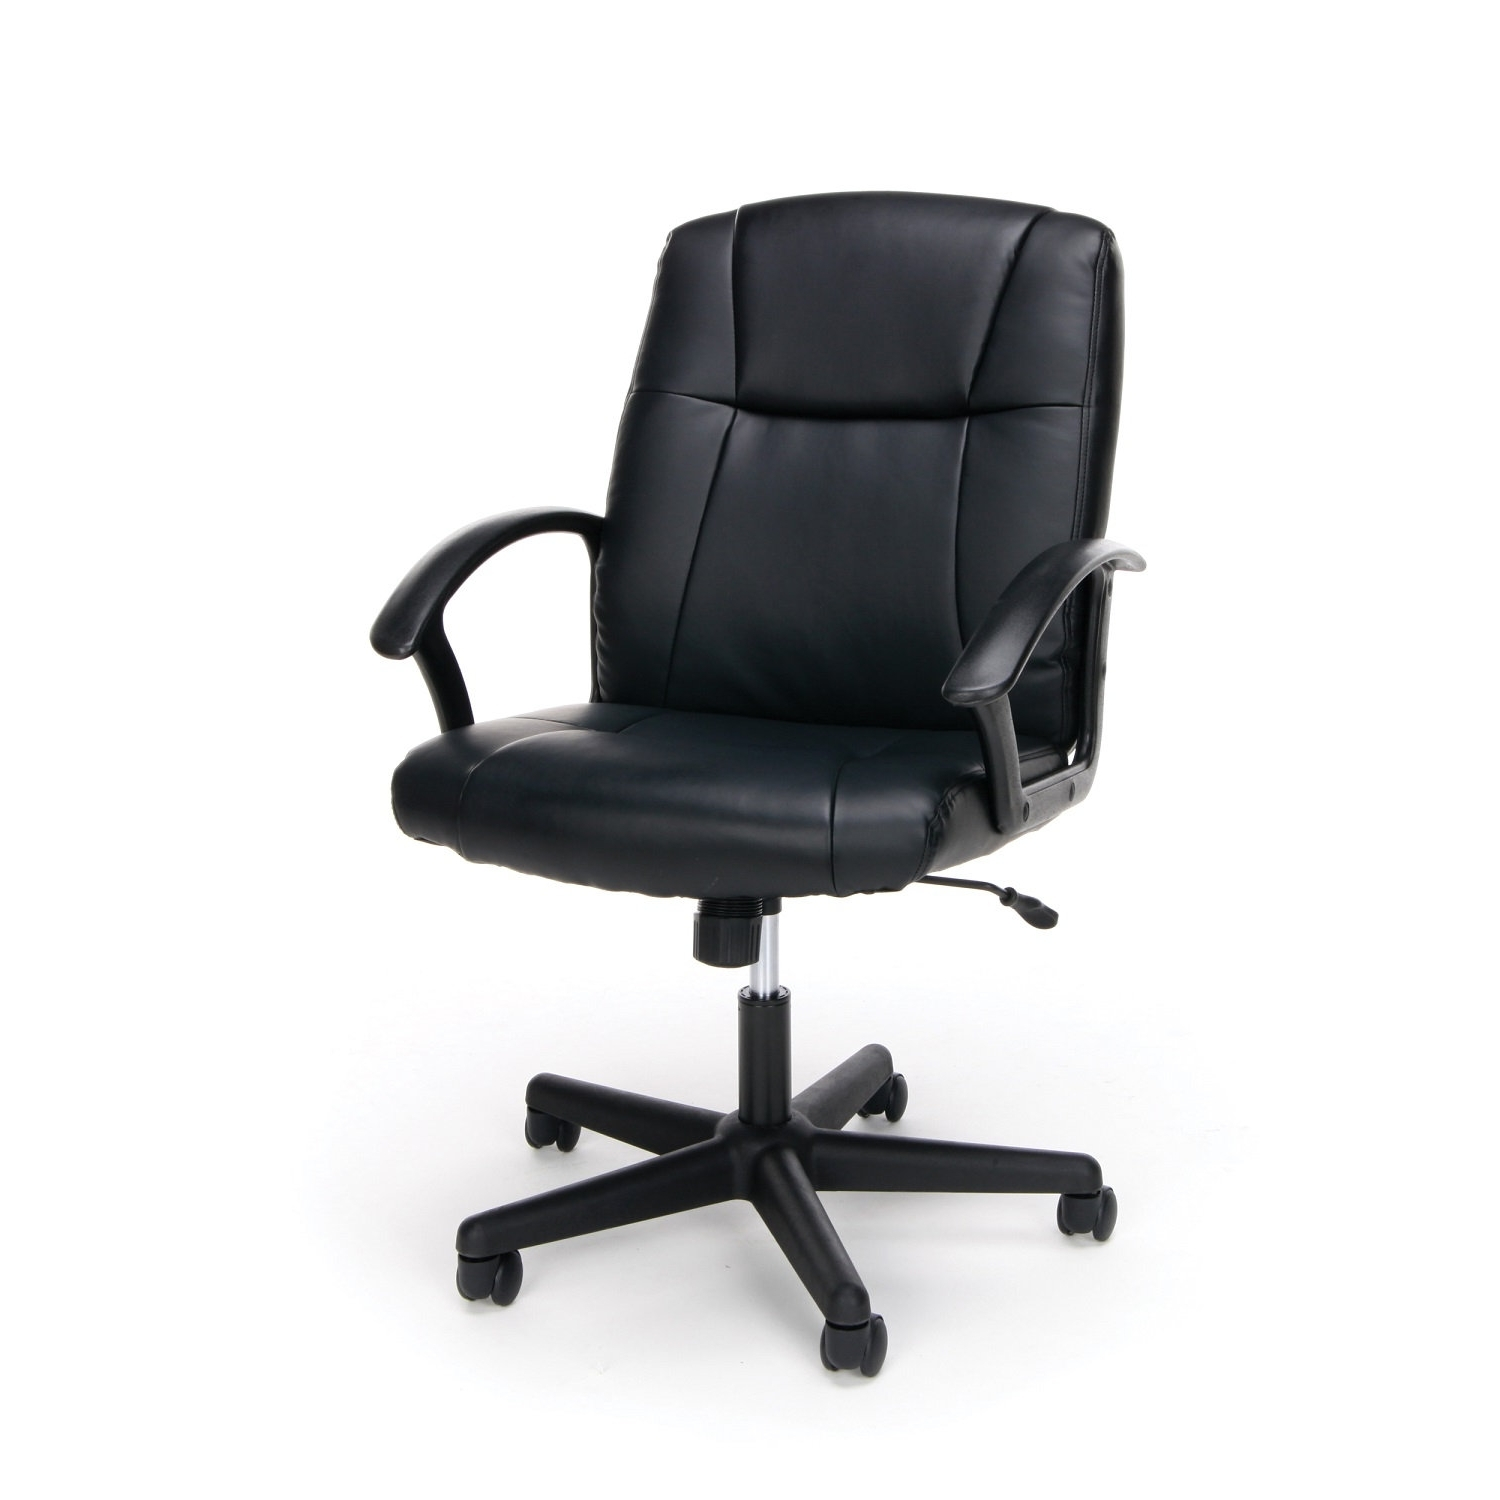 Executive Office Chairs Without Arms Pertaining To Most Up To Date Office Essentials (Gallery 4 of 20)